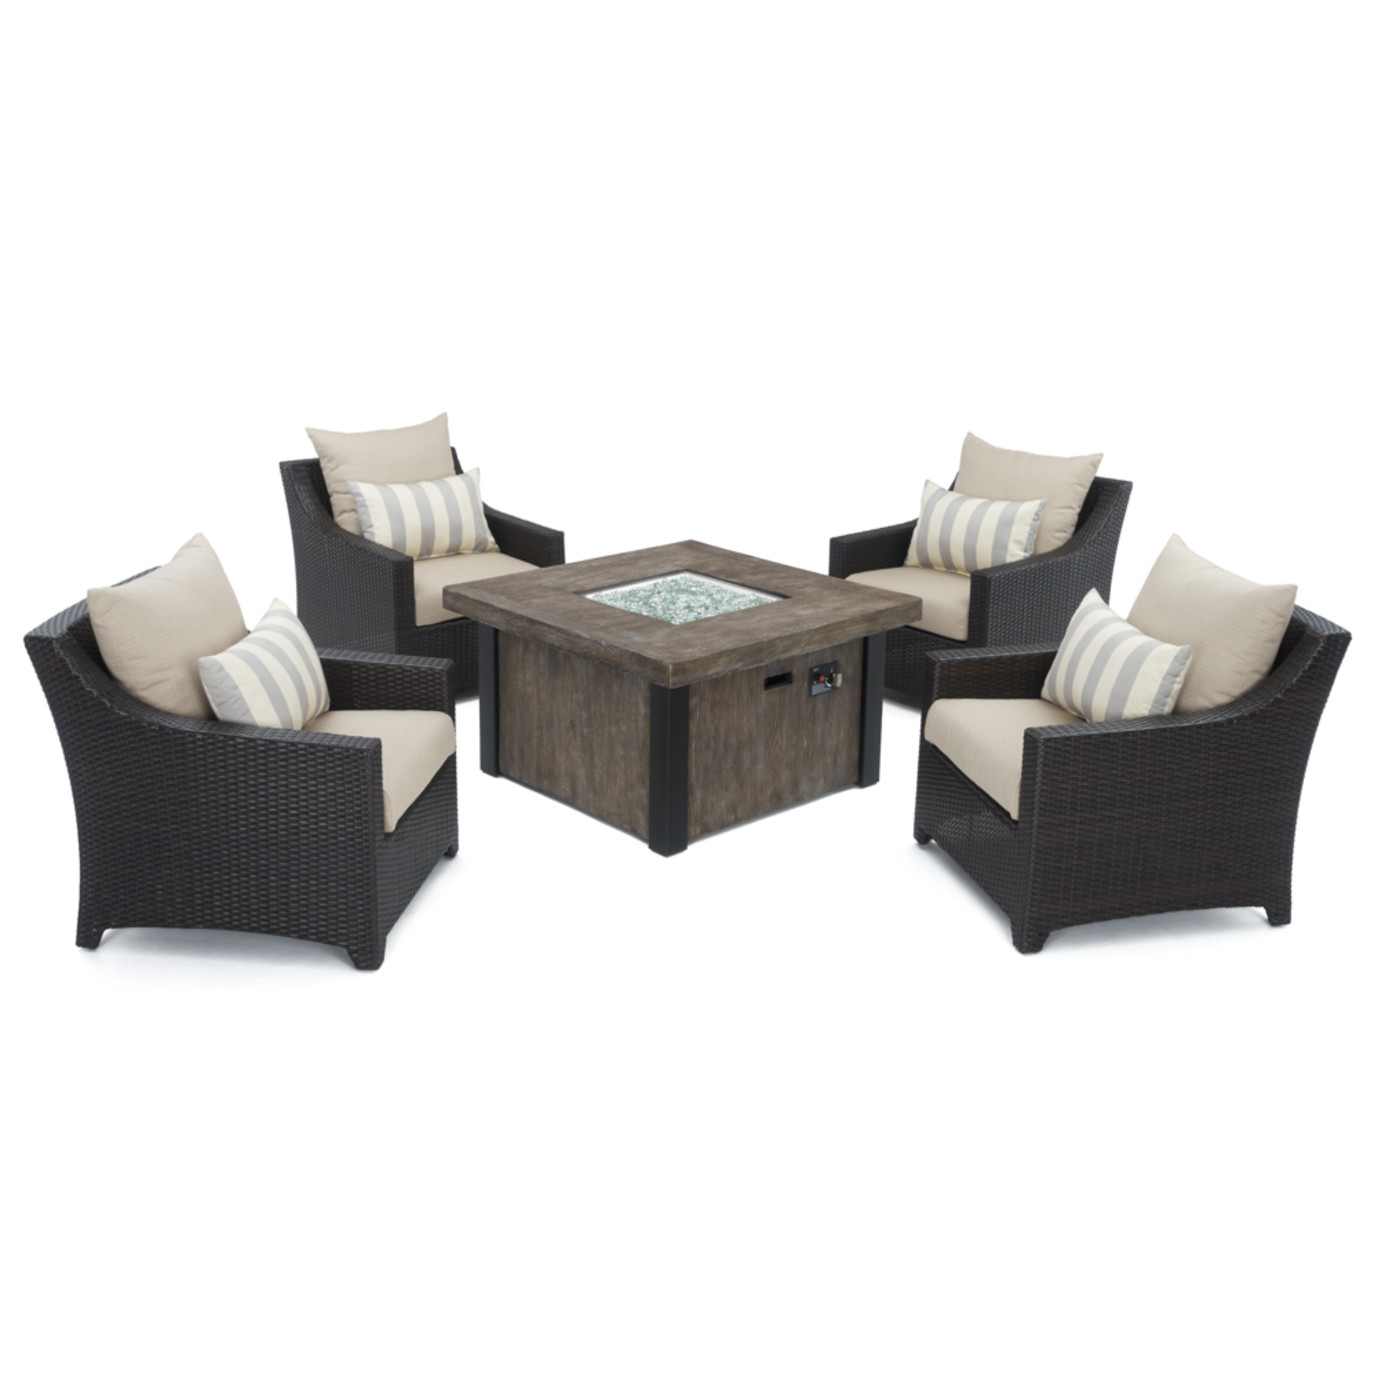 Deco™ 5 Piece Fire Chat Set - Slate Gray